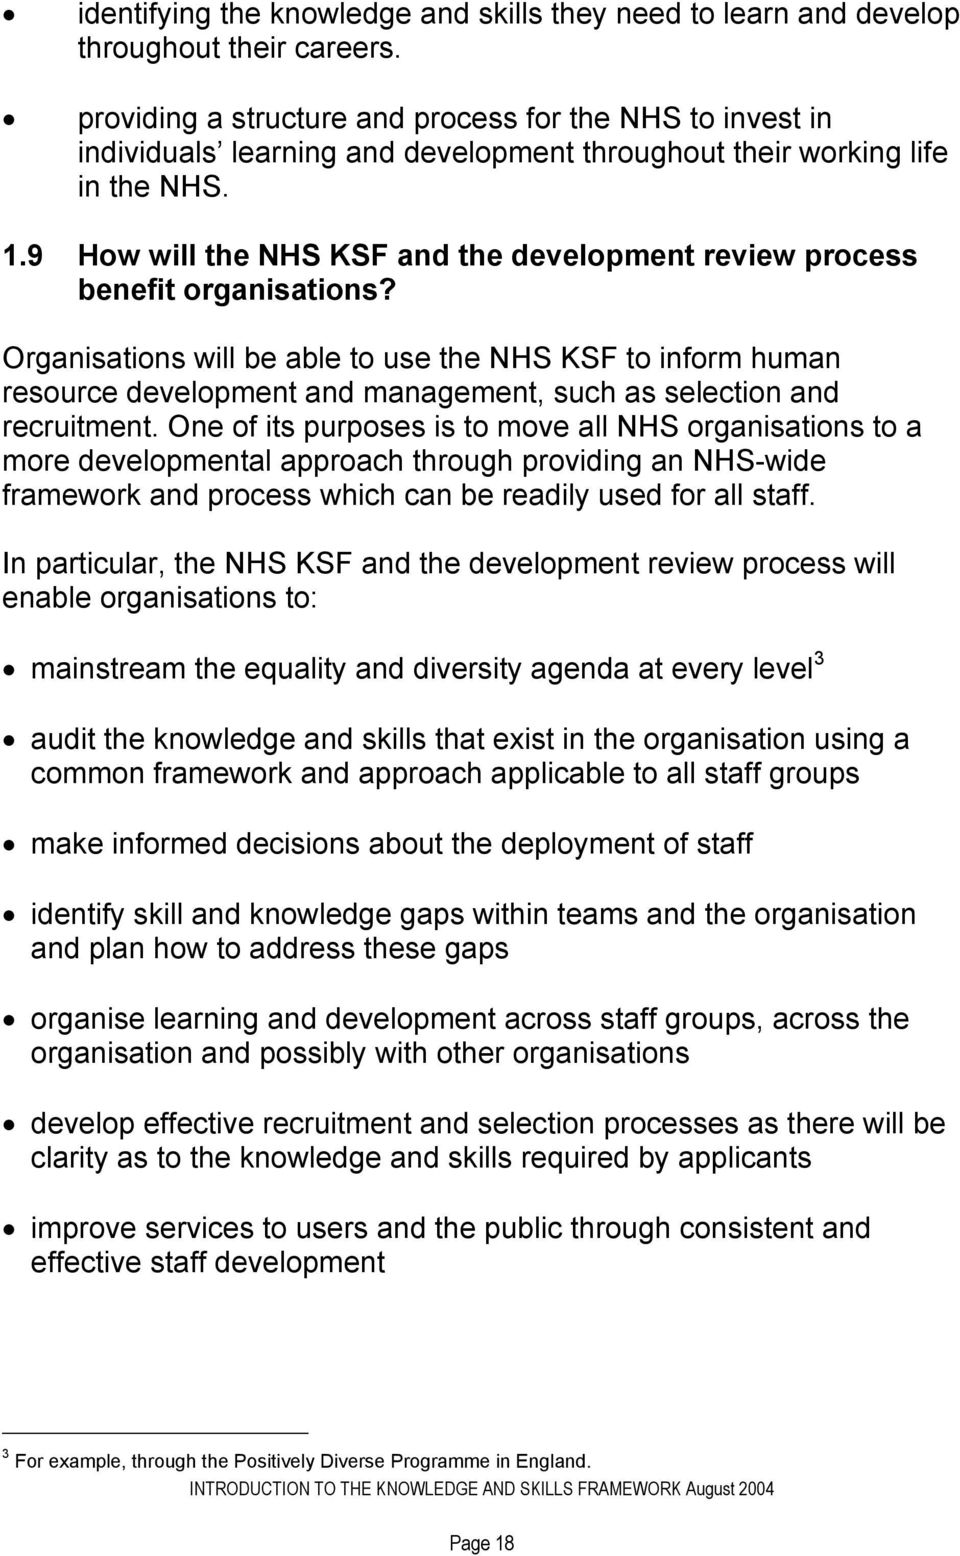 9 How will the NHS KSF and the development review process benefit organisations?